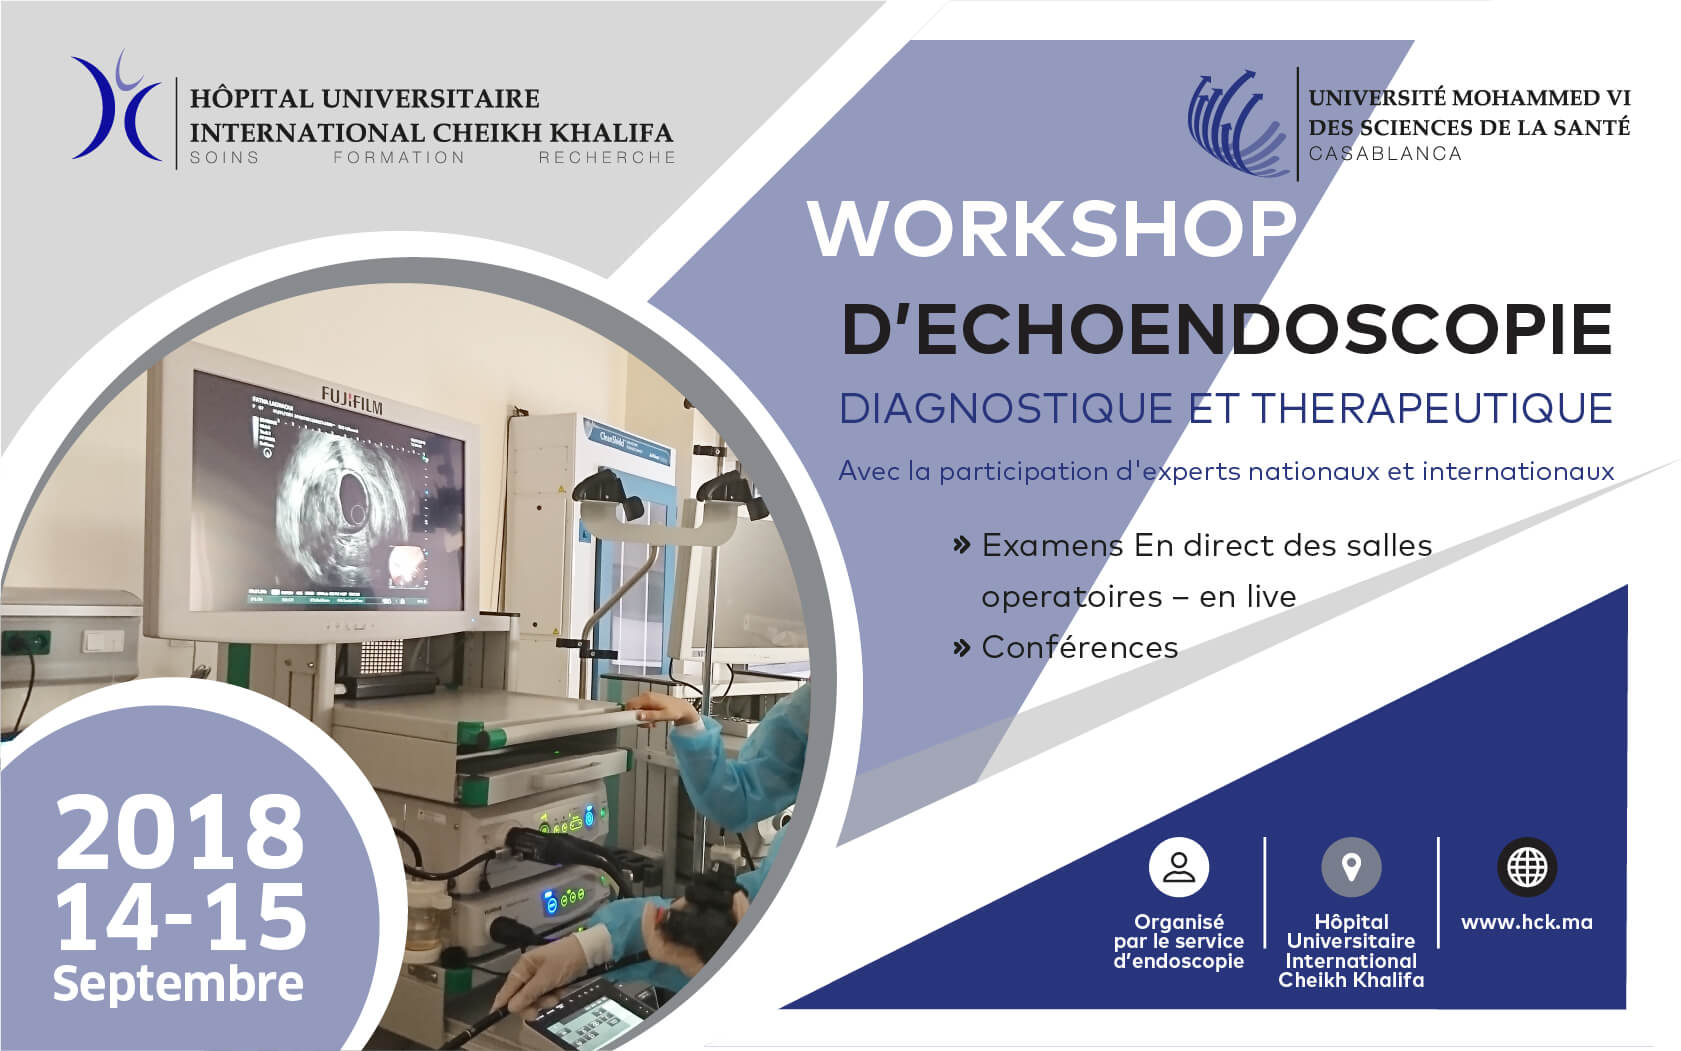 WORKSHOP D'ECHOENDOSCOPIE DIAGNOSTIQUE ET THÉRAPEUTIQUE